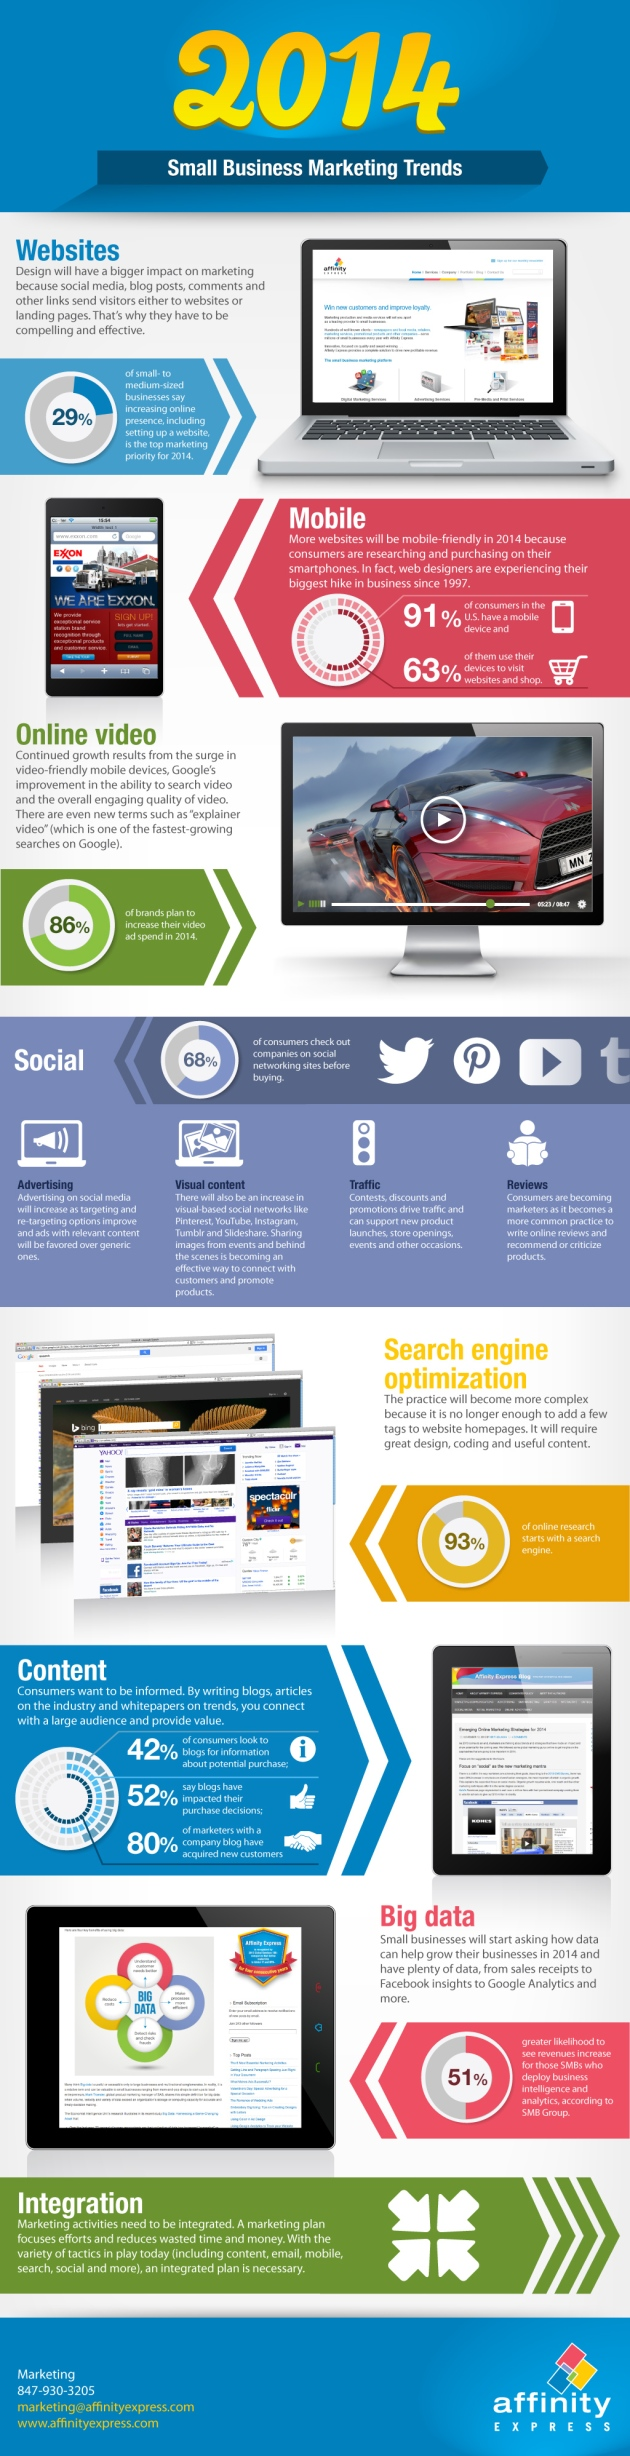 2014 Marketing Trends Infographic